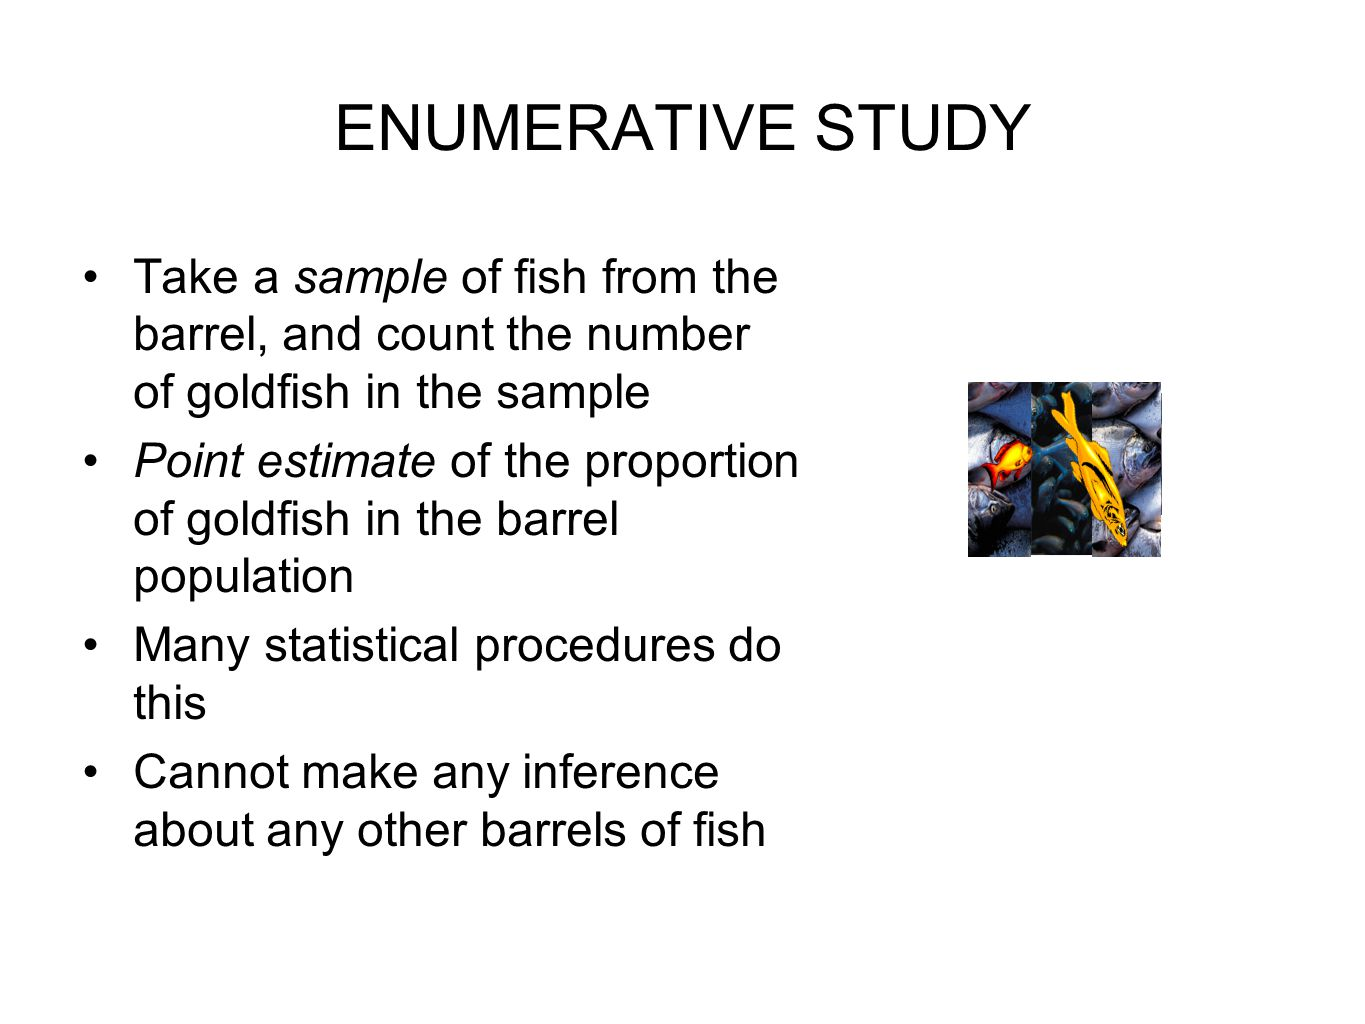 ENUMERATIVE STUDY Take a sample of fish from the barrel, and count the number of goldfish in the sample Point estimate of the proportion of goldfish in the barrel population Many statistical procedures do this Cannot make any inference about any other barrels of fish